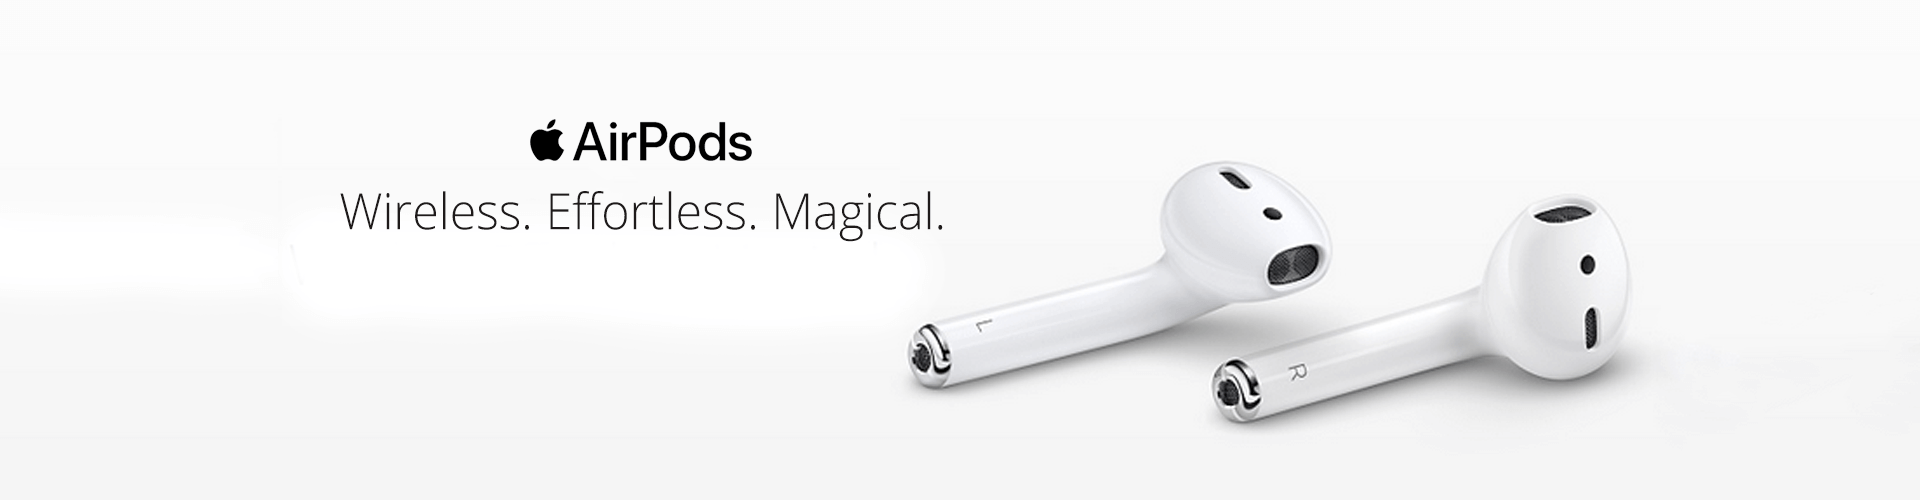 Apple airpods wireless effortless magical